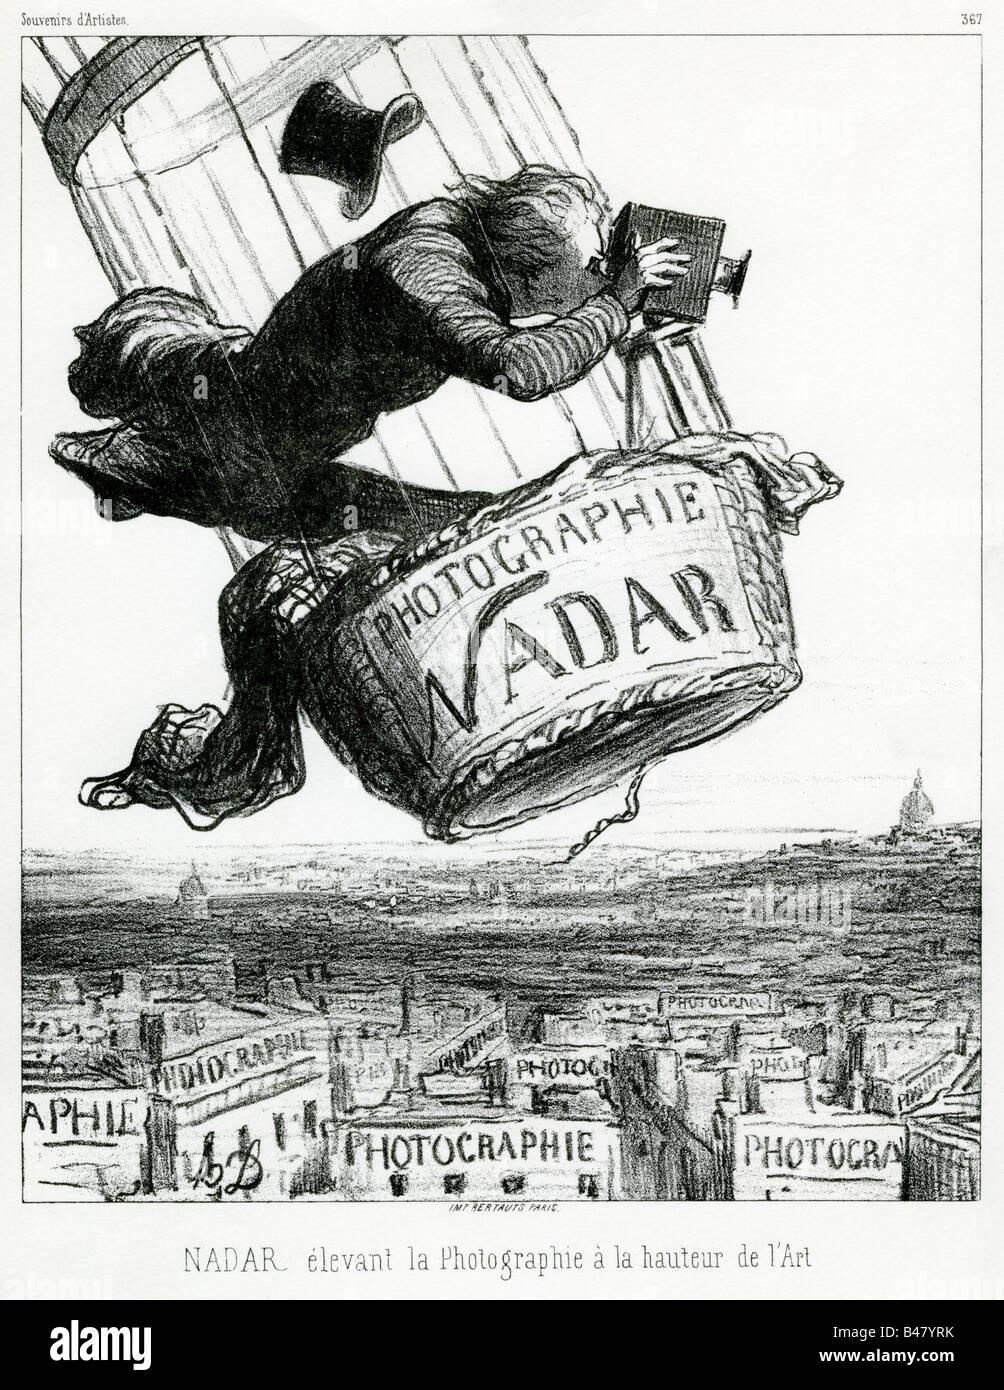 Nadar, 6.4.1820 - 21.3.1910, French photographer, caricature by Honore Daumier, 19th century, Nadar is elevating - Stock Image